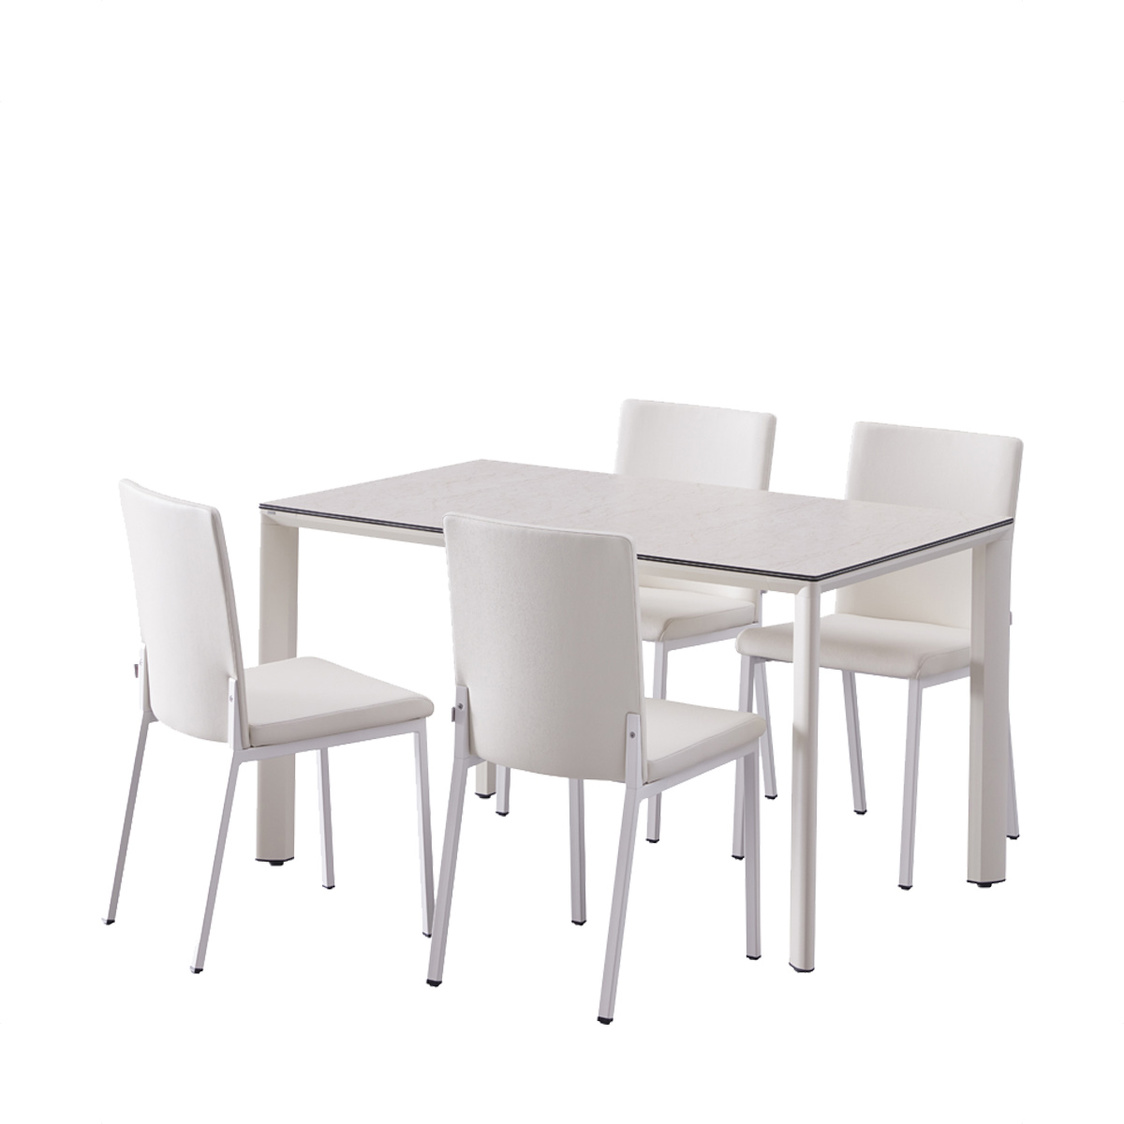 DELIC Dining Table for 4 CPM HT11T13ECN-IMIIV